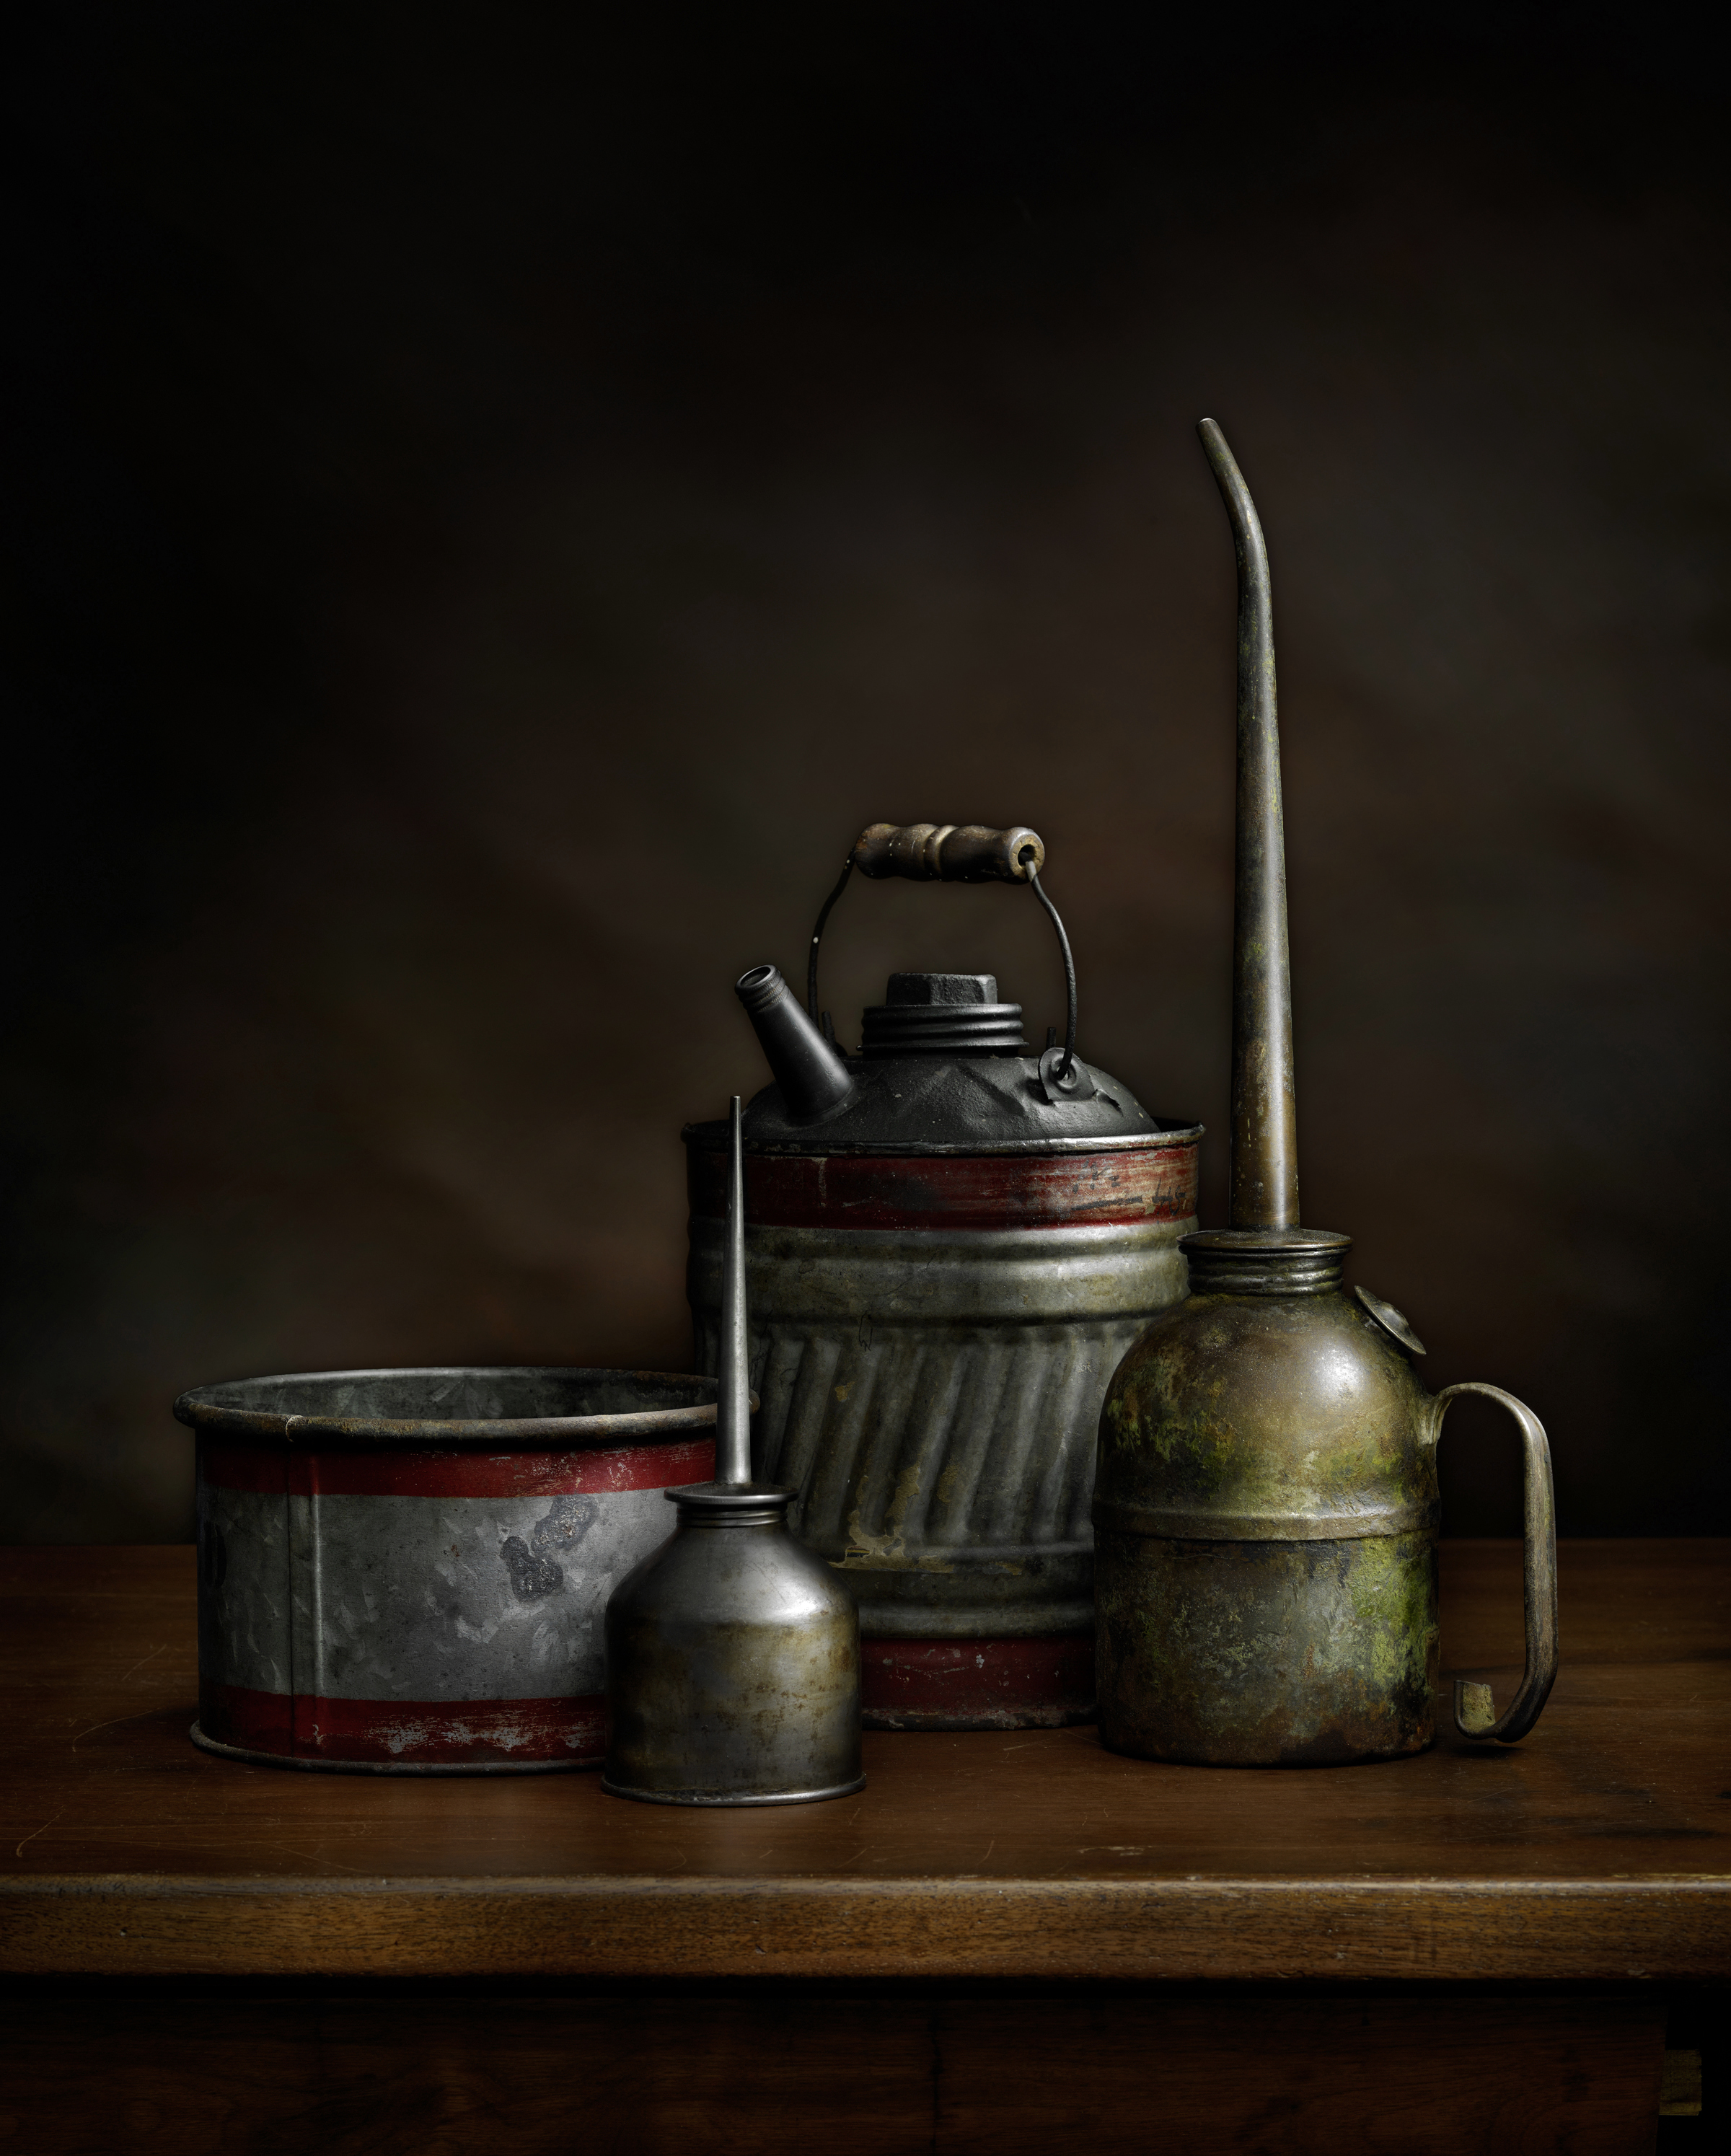 """Oil Cans"" series … a new image"